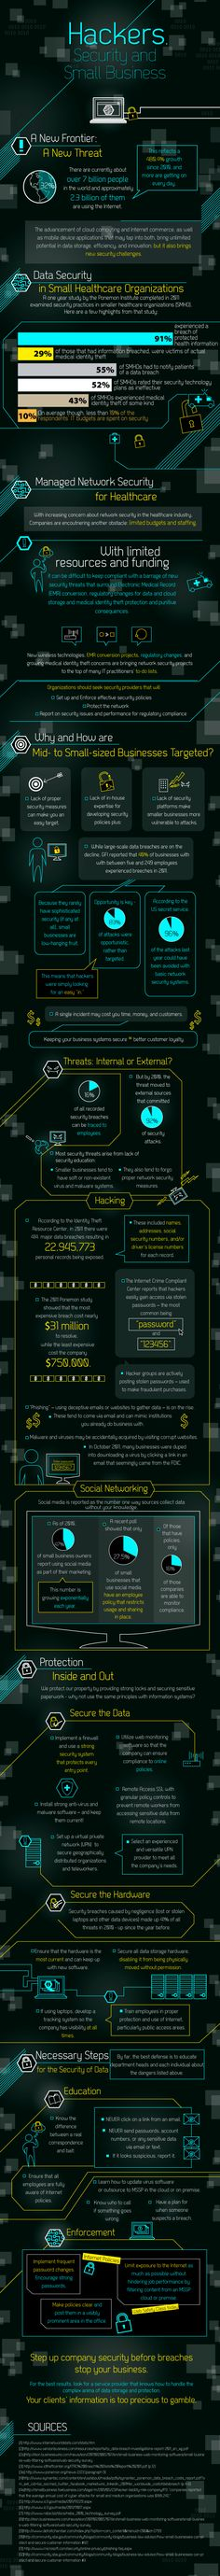 Infographic: Online Security Today – New Threats & How to Stop Them